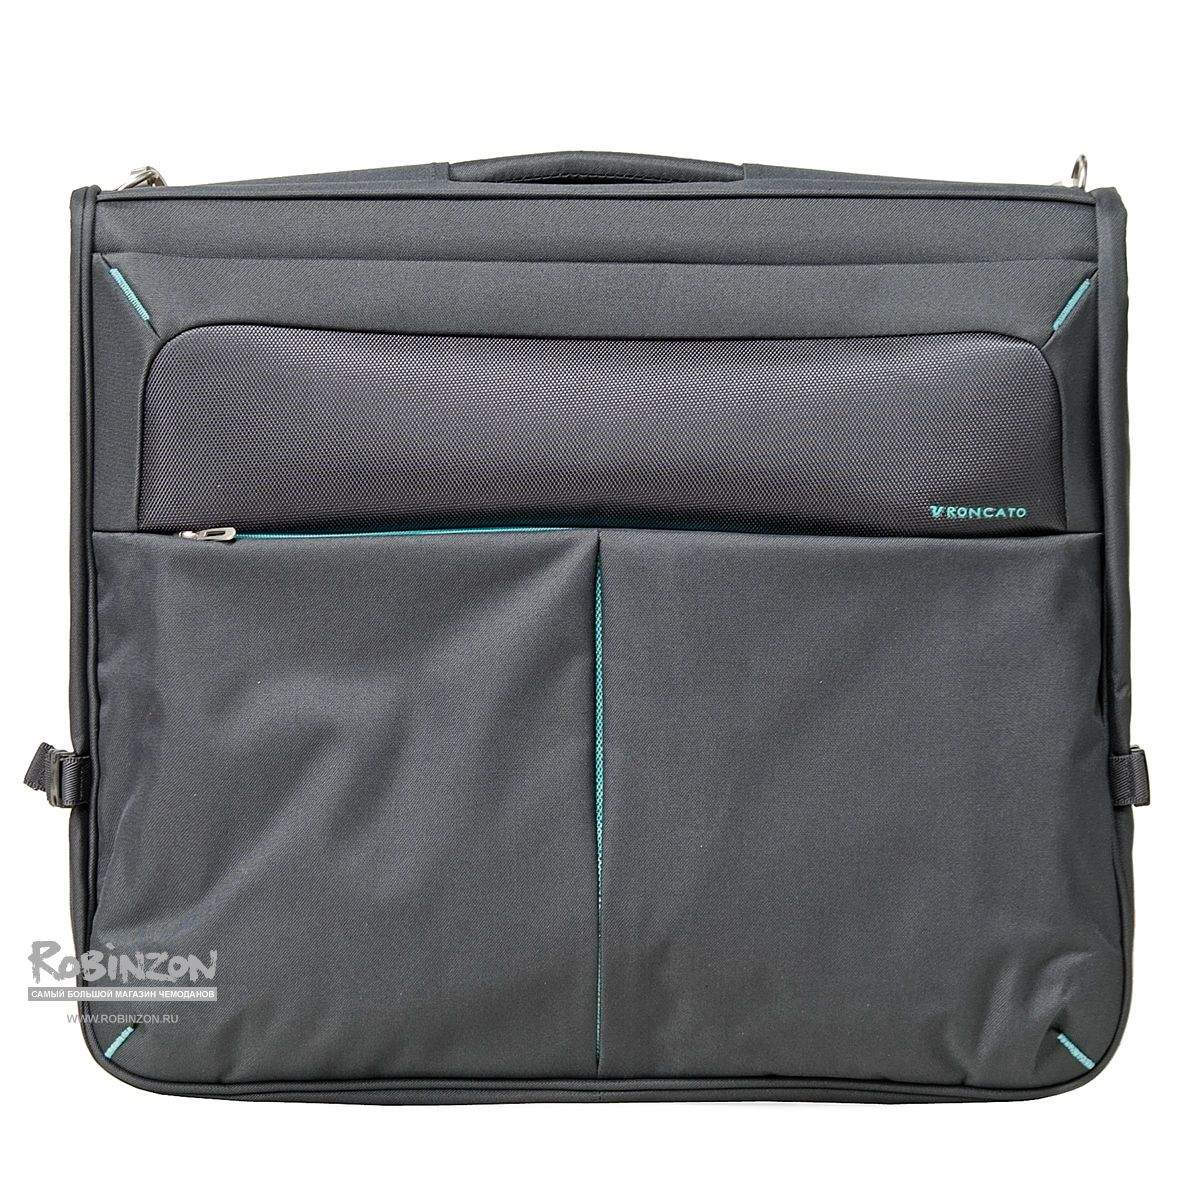 Портплед Roncato 4030 Cruiser Garment Bag